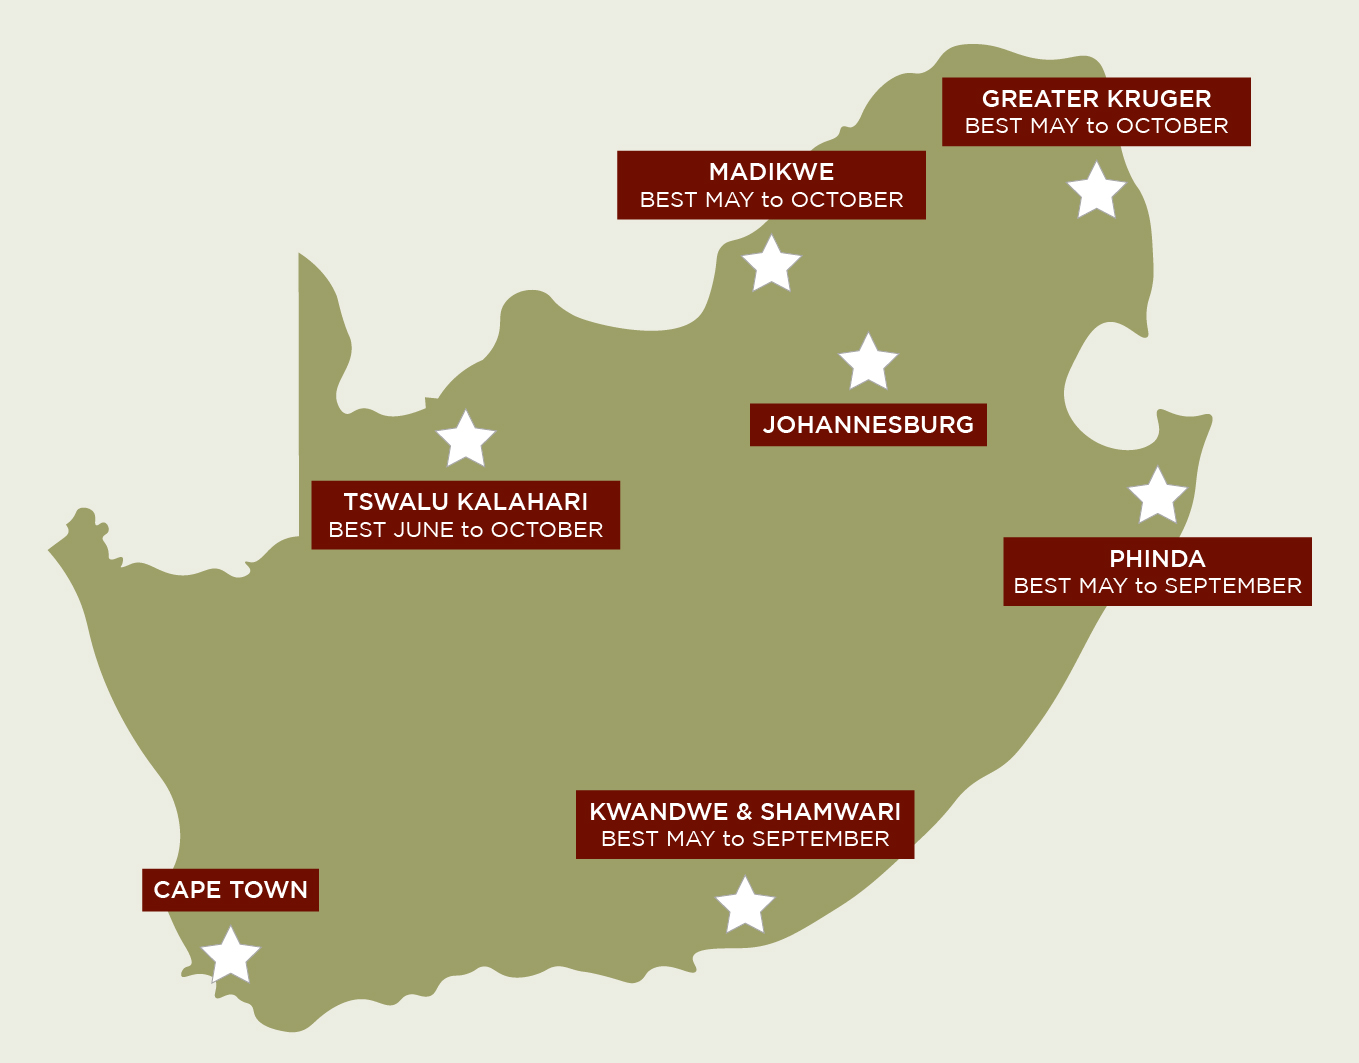 South Africa Luxury Safaris - Where to Go